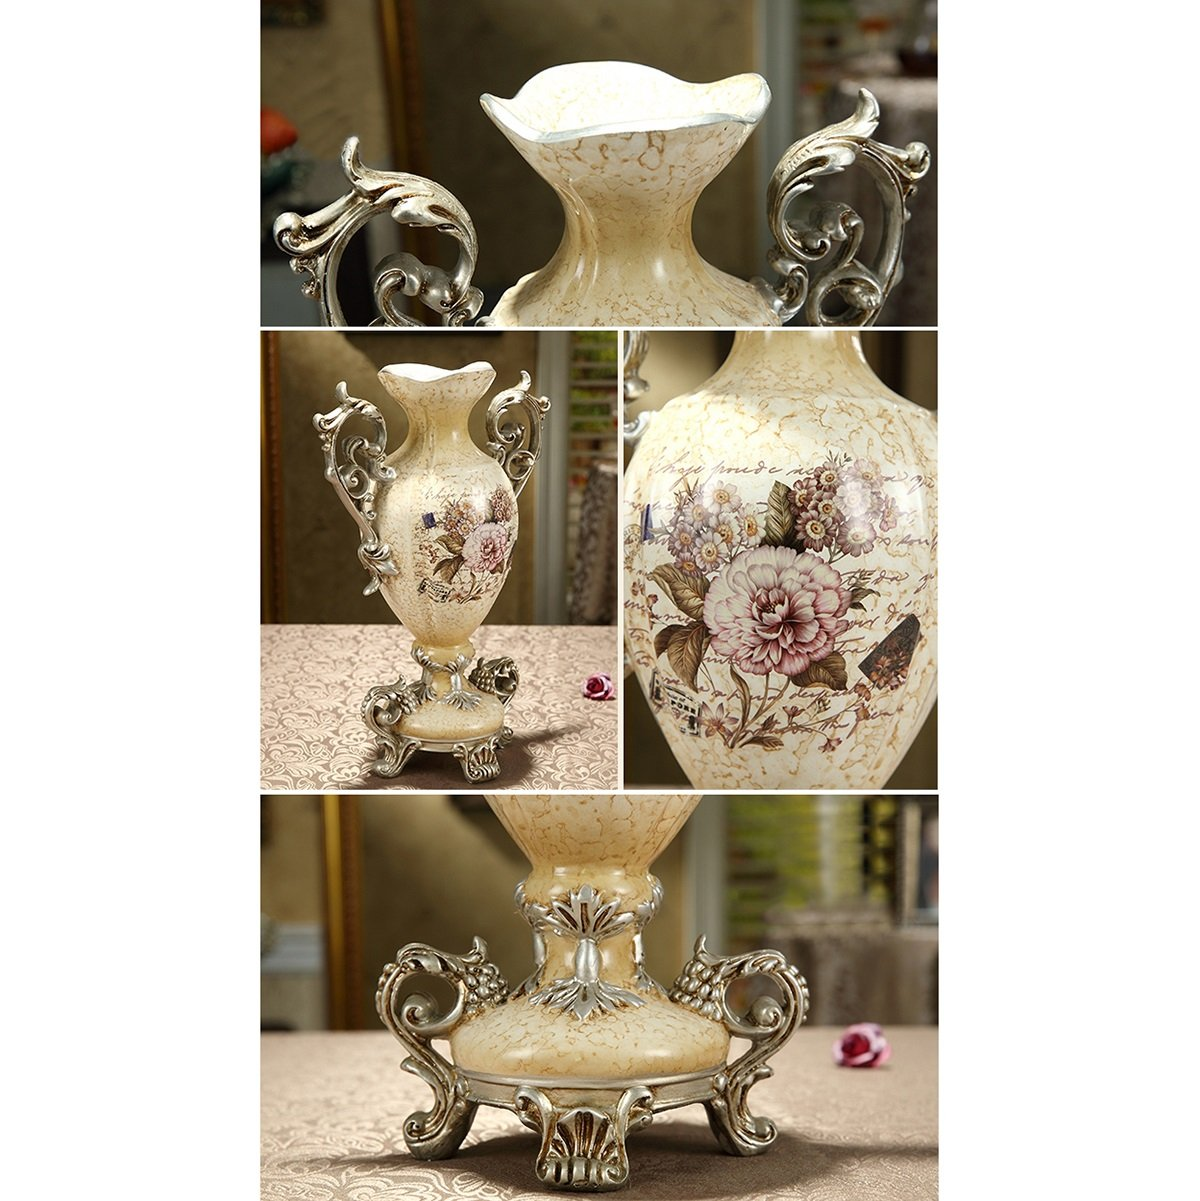 European-style Retro Resin Flowers Vase Living Room Dining Table Study Home Decoration Luxurious Creative Hand-painted Vase, Beige by The tail of July (Image #4)